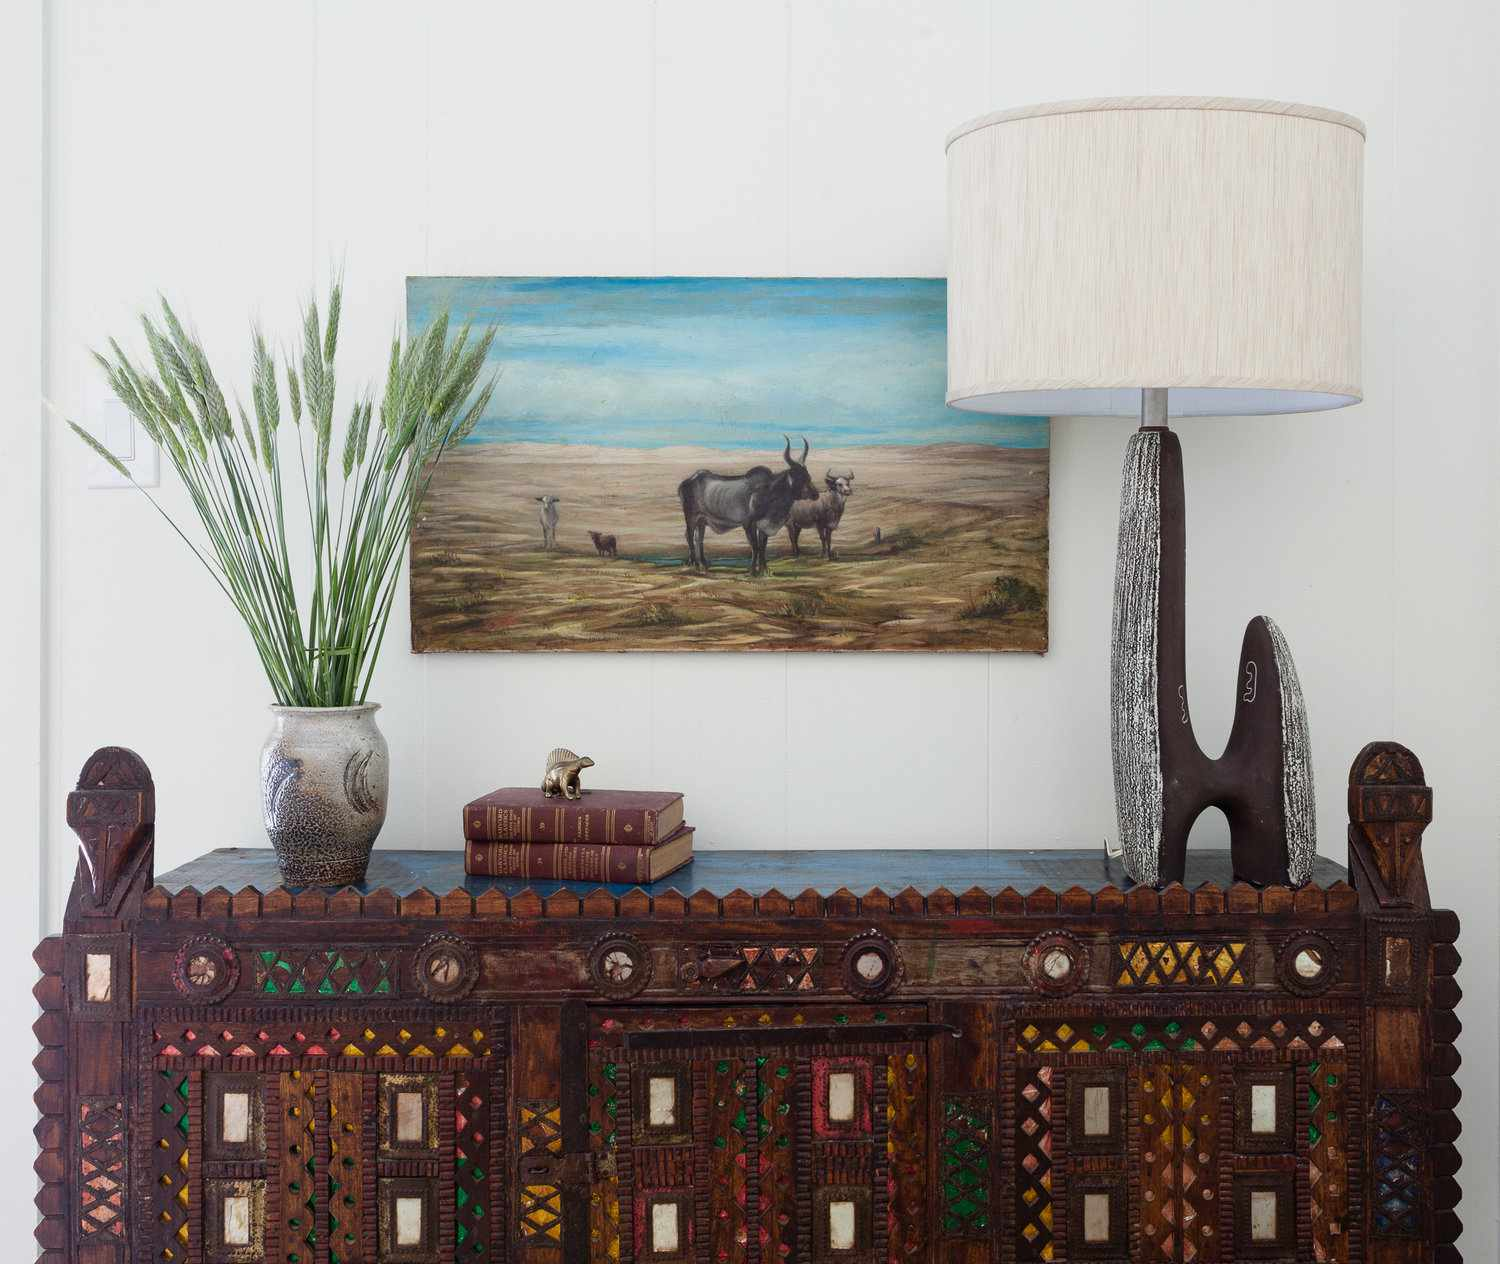 A bedroom decorated with Western art, furniture, and decor